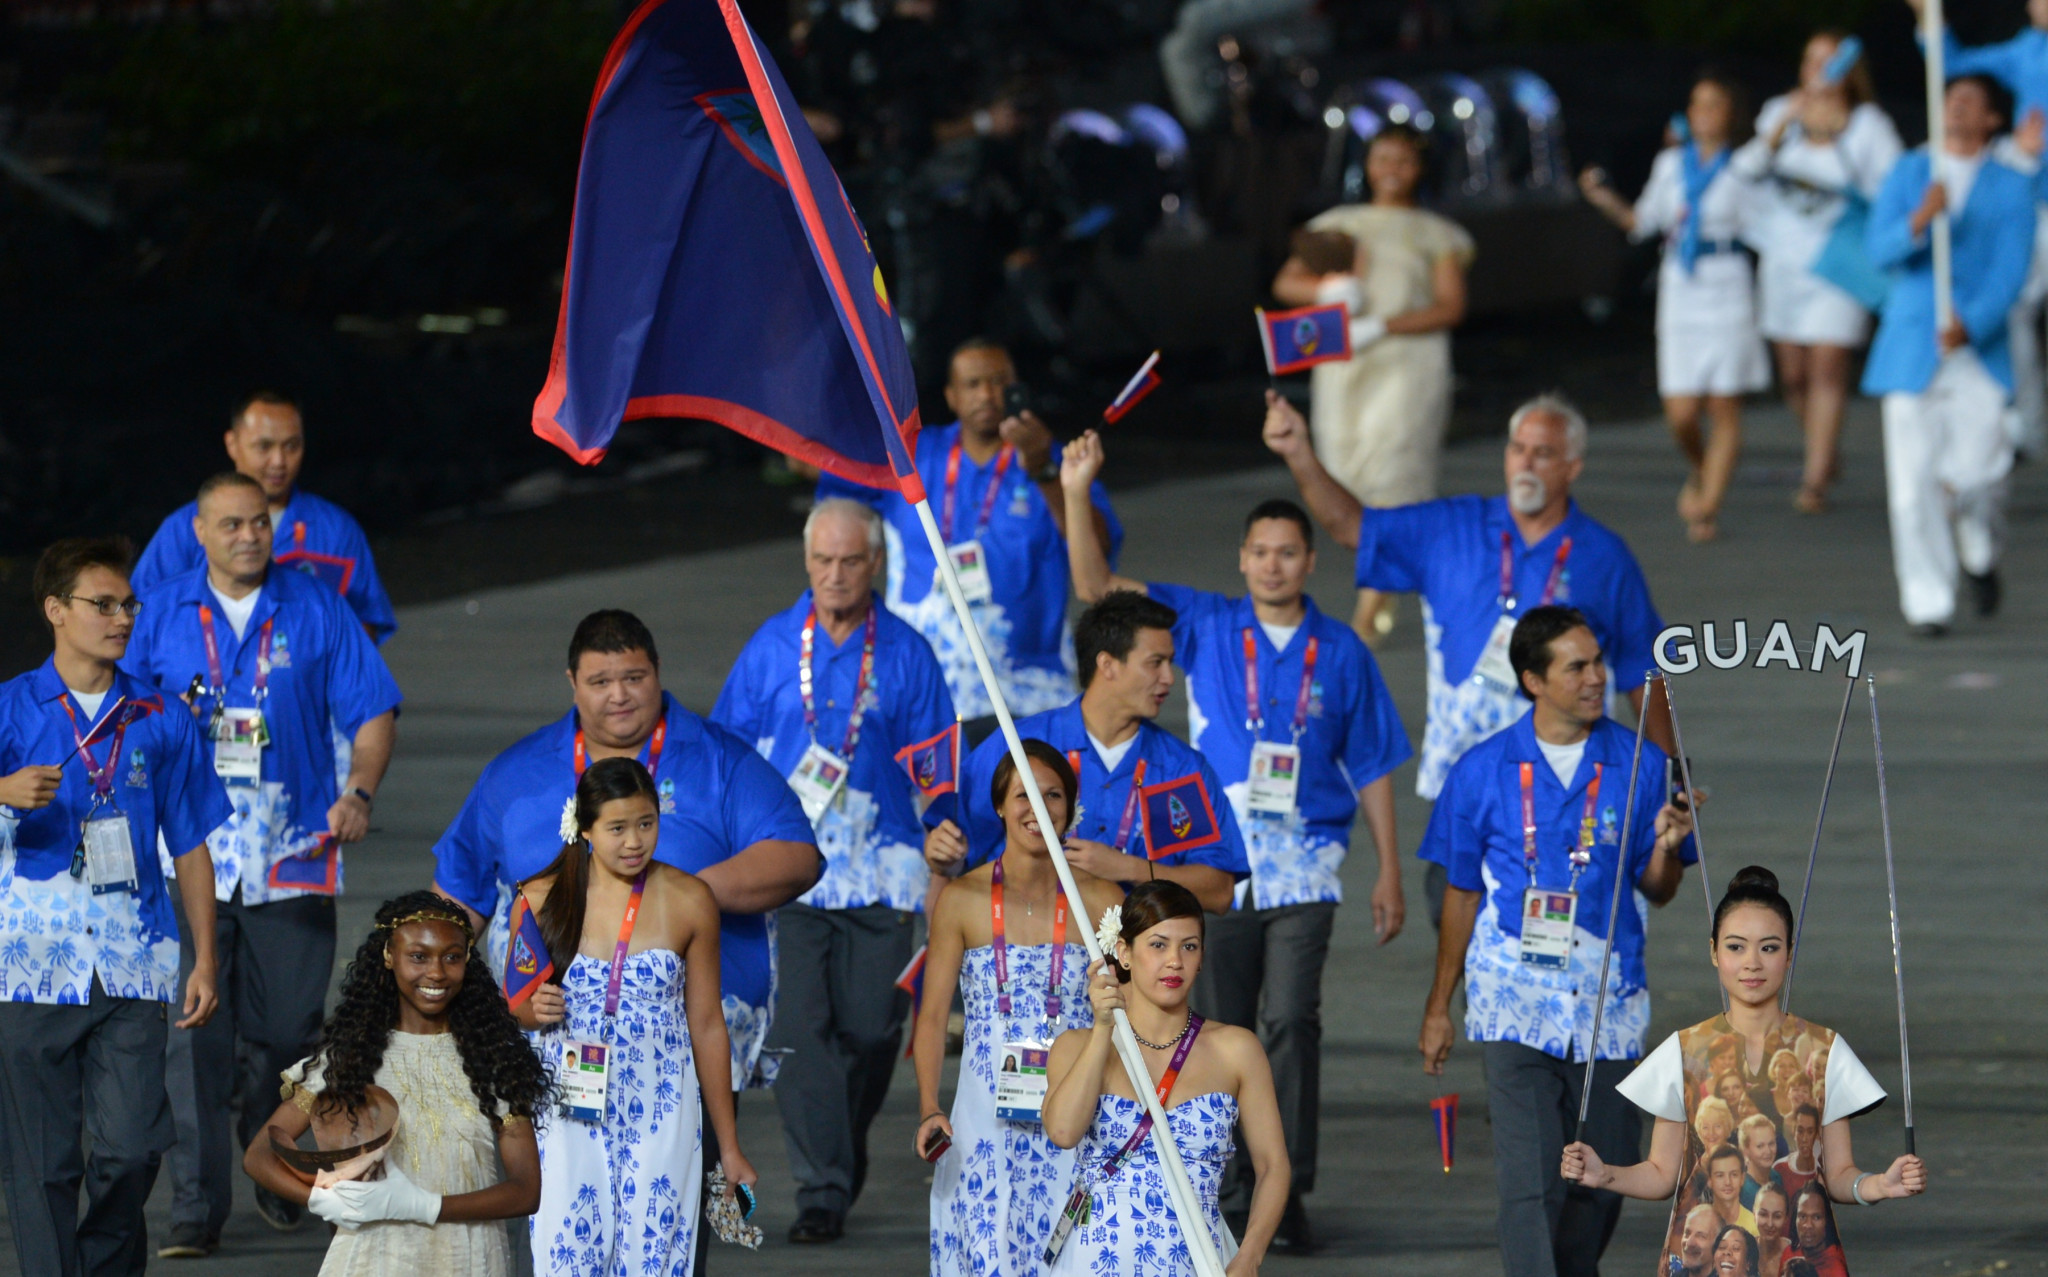 Guam have been represented at the past eight Summer Olympic Games ©Getty Images